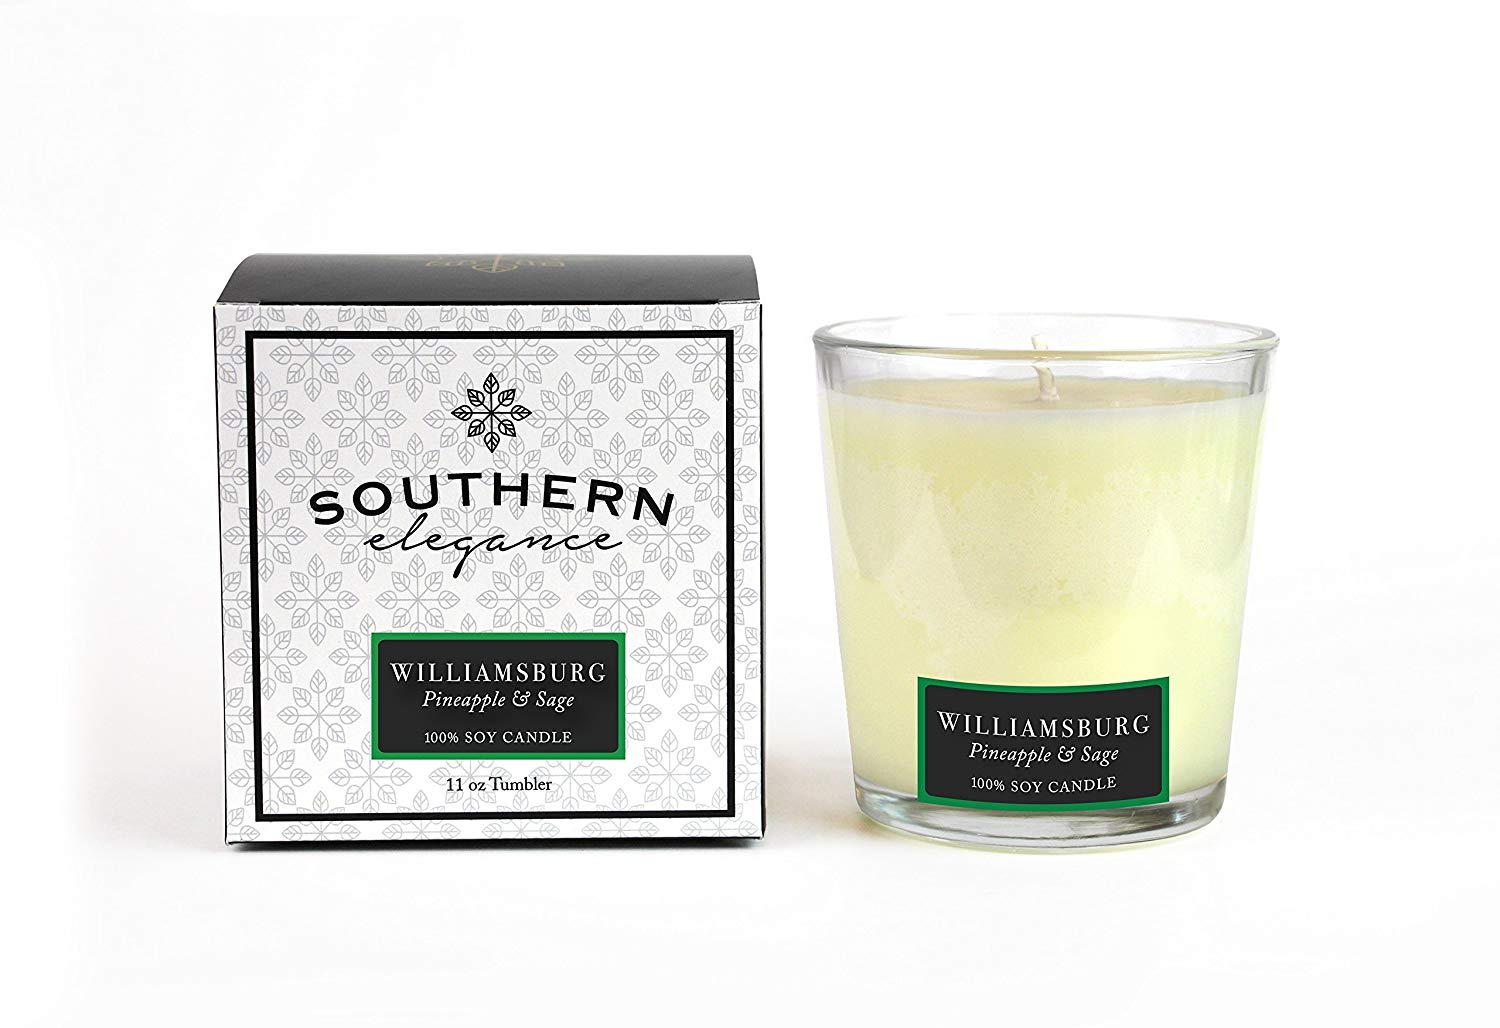 Southern Elegance Williamsburg: Pineapple Sage Scented Soy Candle~ 11 oz Soy tumbler